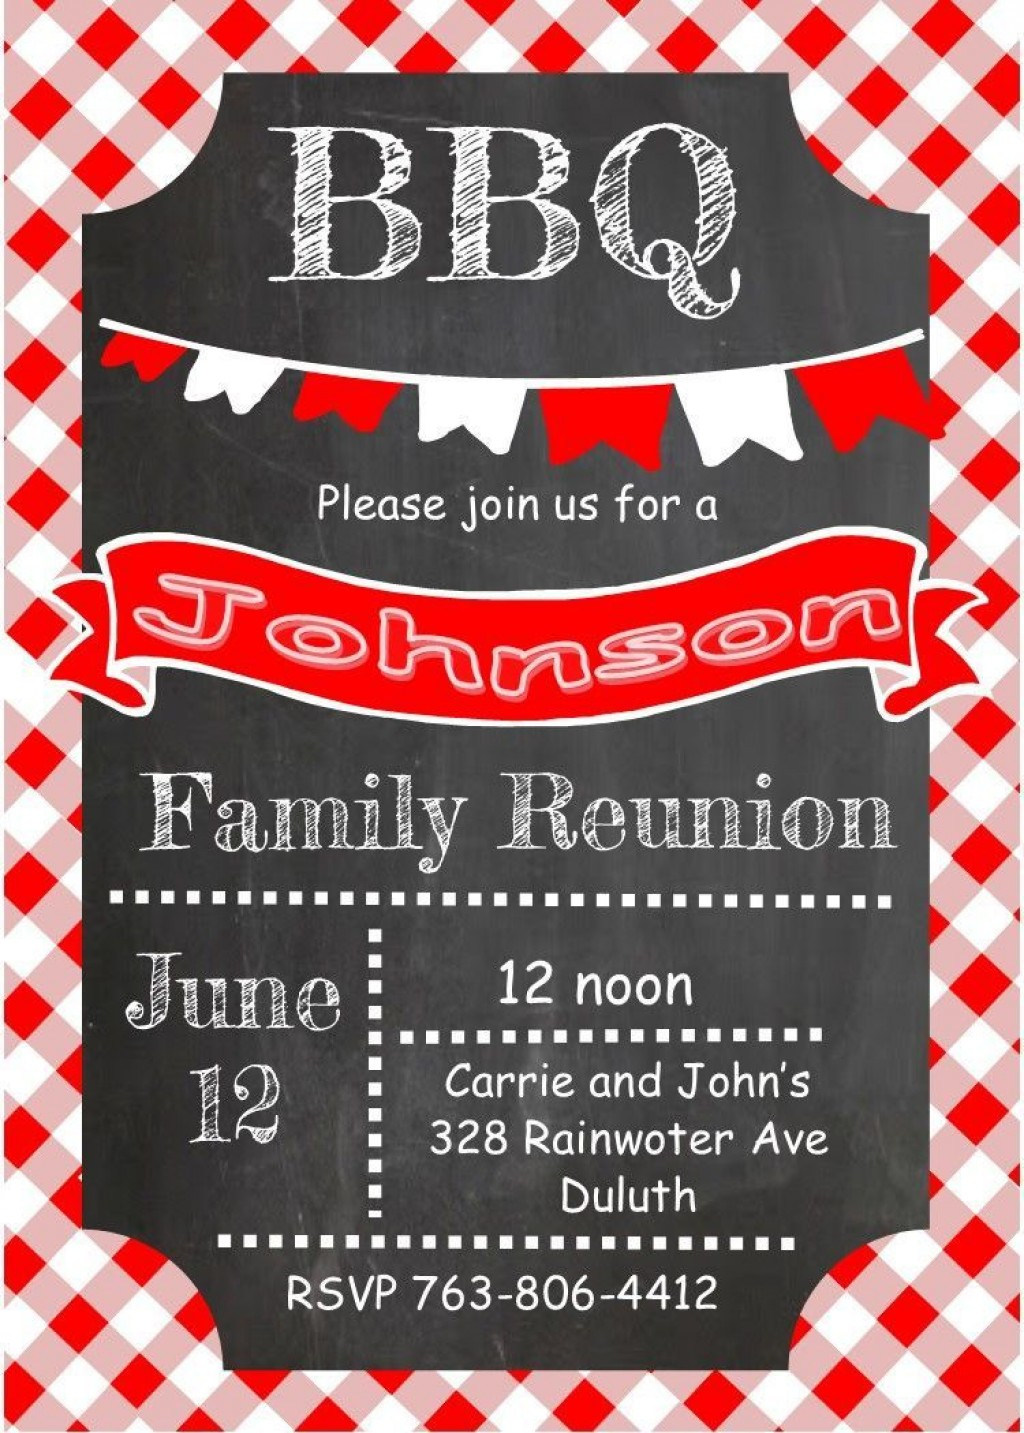 001 Fascinating Free Family Reunion Flyer Template Word High Resolution Large